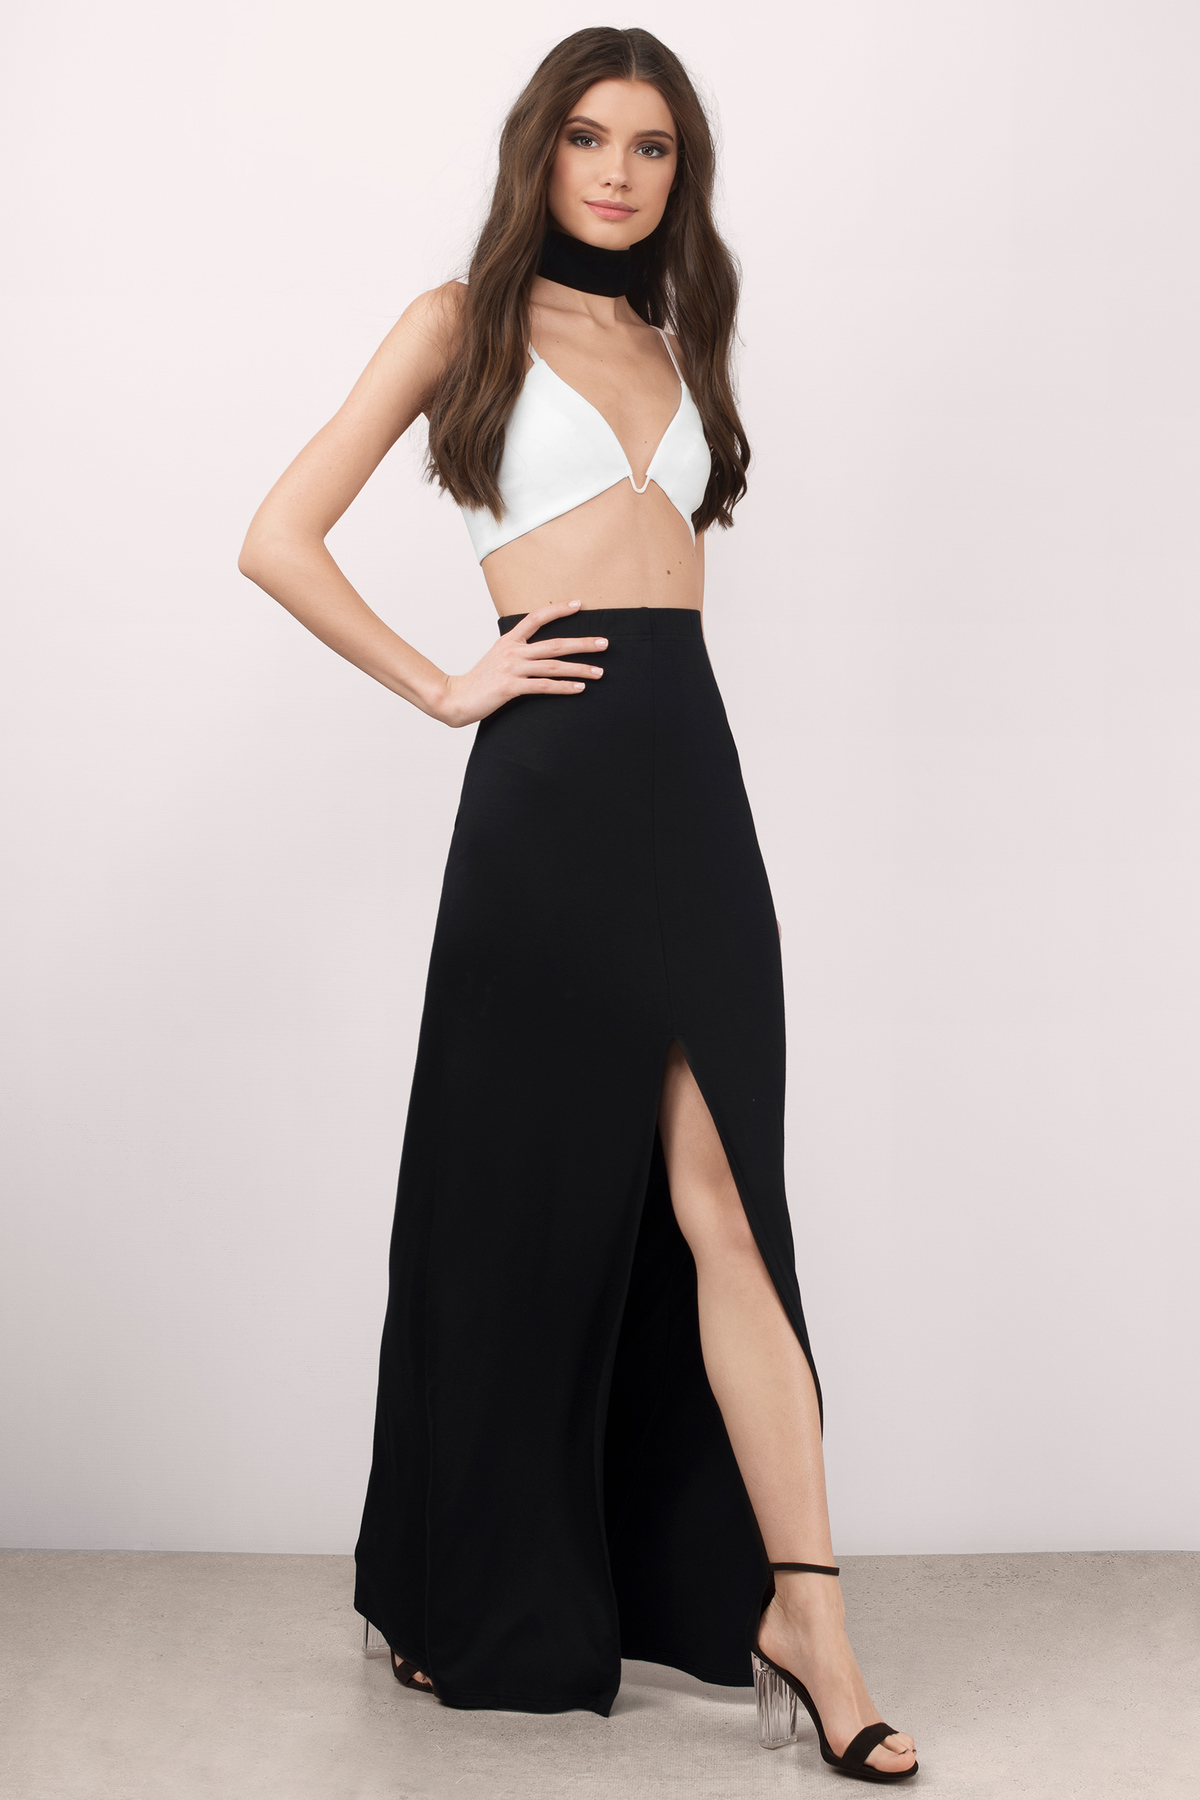 Sexy Black Skirt - Front Slit Skirt - Black Skirt - $52.00